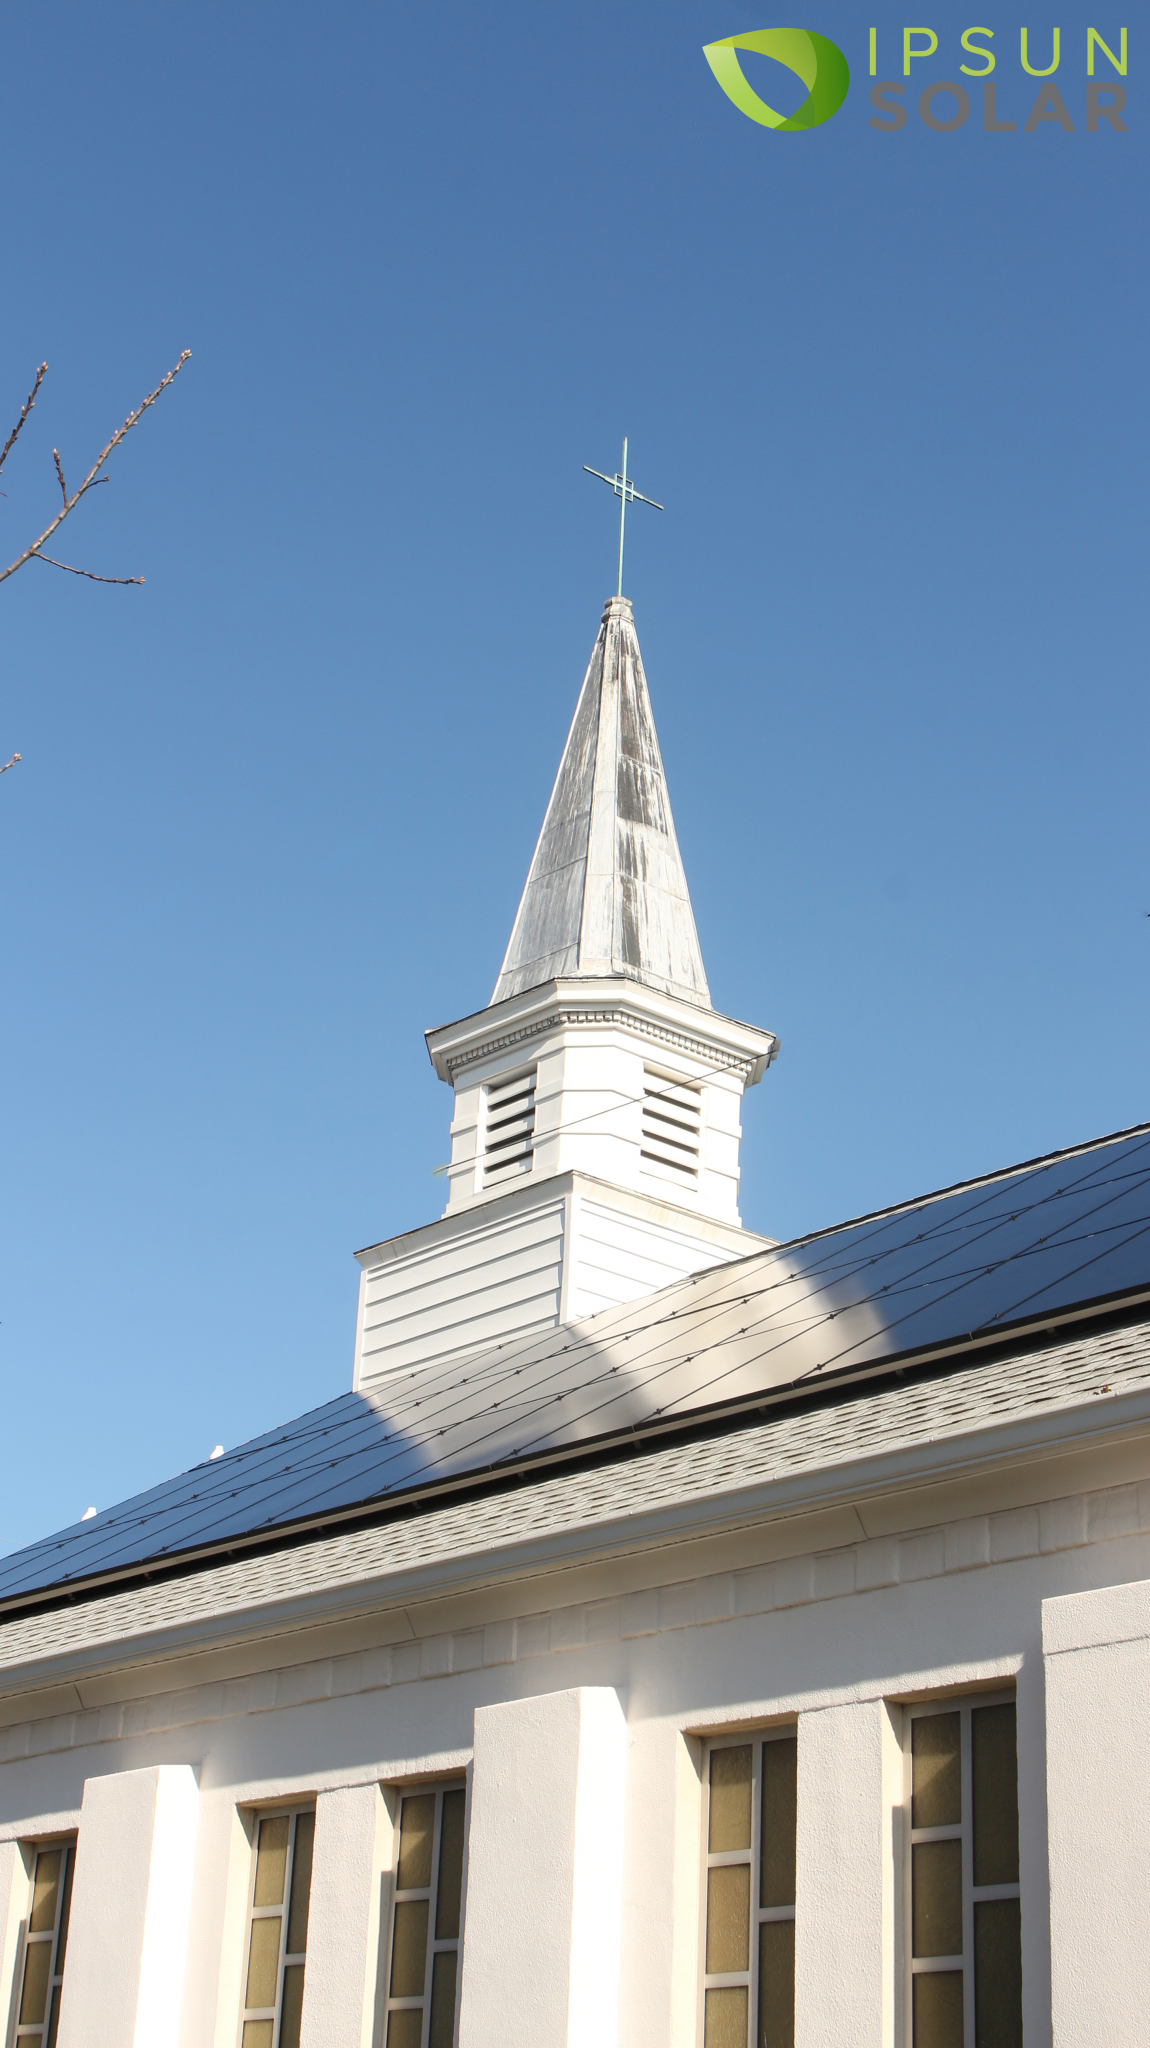 Lady Queen of Peace solar panels